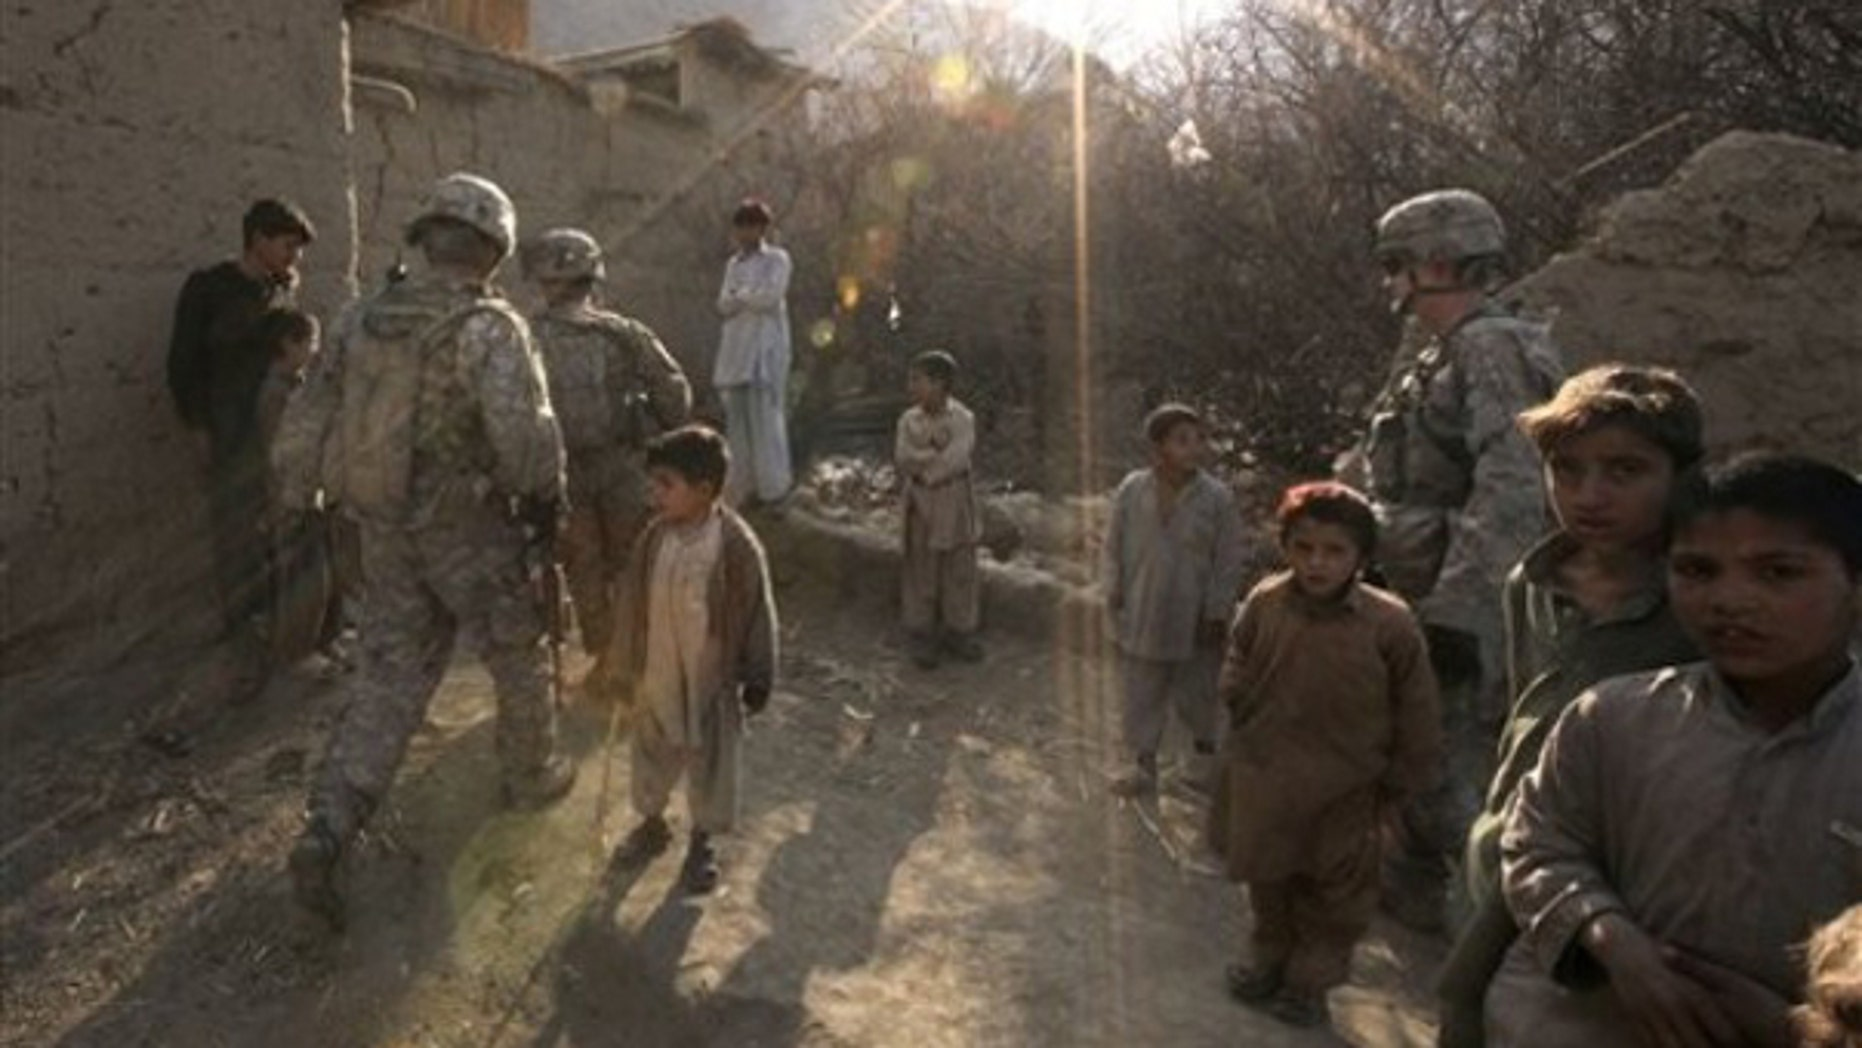 Sunday: U.S. Army soldiers patrol inside Pech Valley, Kunar province, in northeastern Afghanistan. Private consultants Checchi & Company won a no-bid contract from the Obama administration to 'train the next generation of legal professionals' in Afghanistan. (AP)